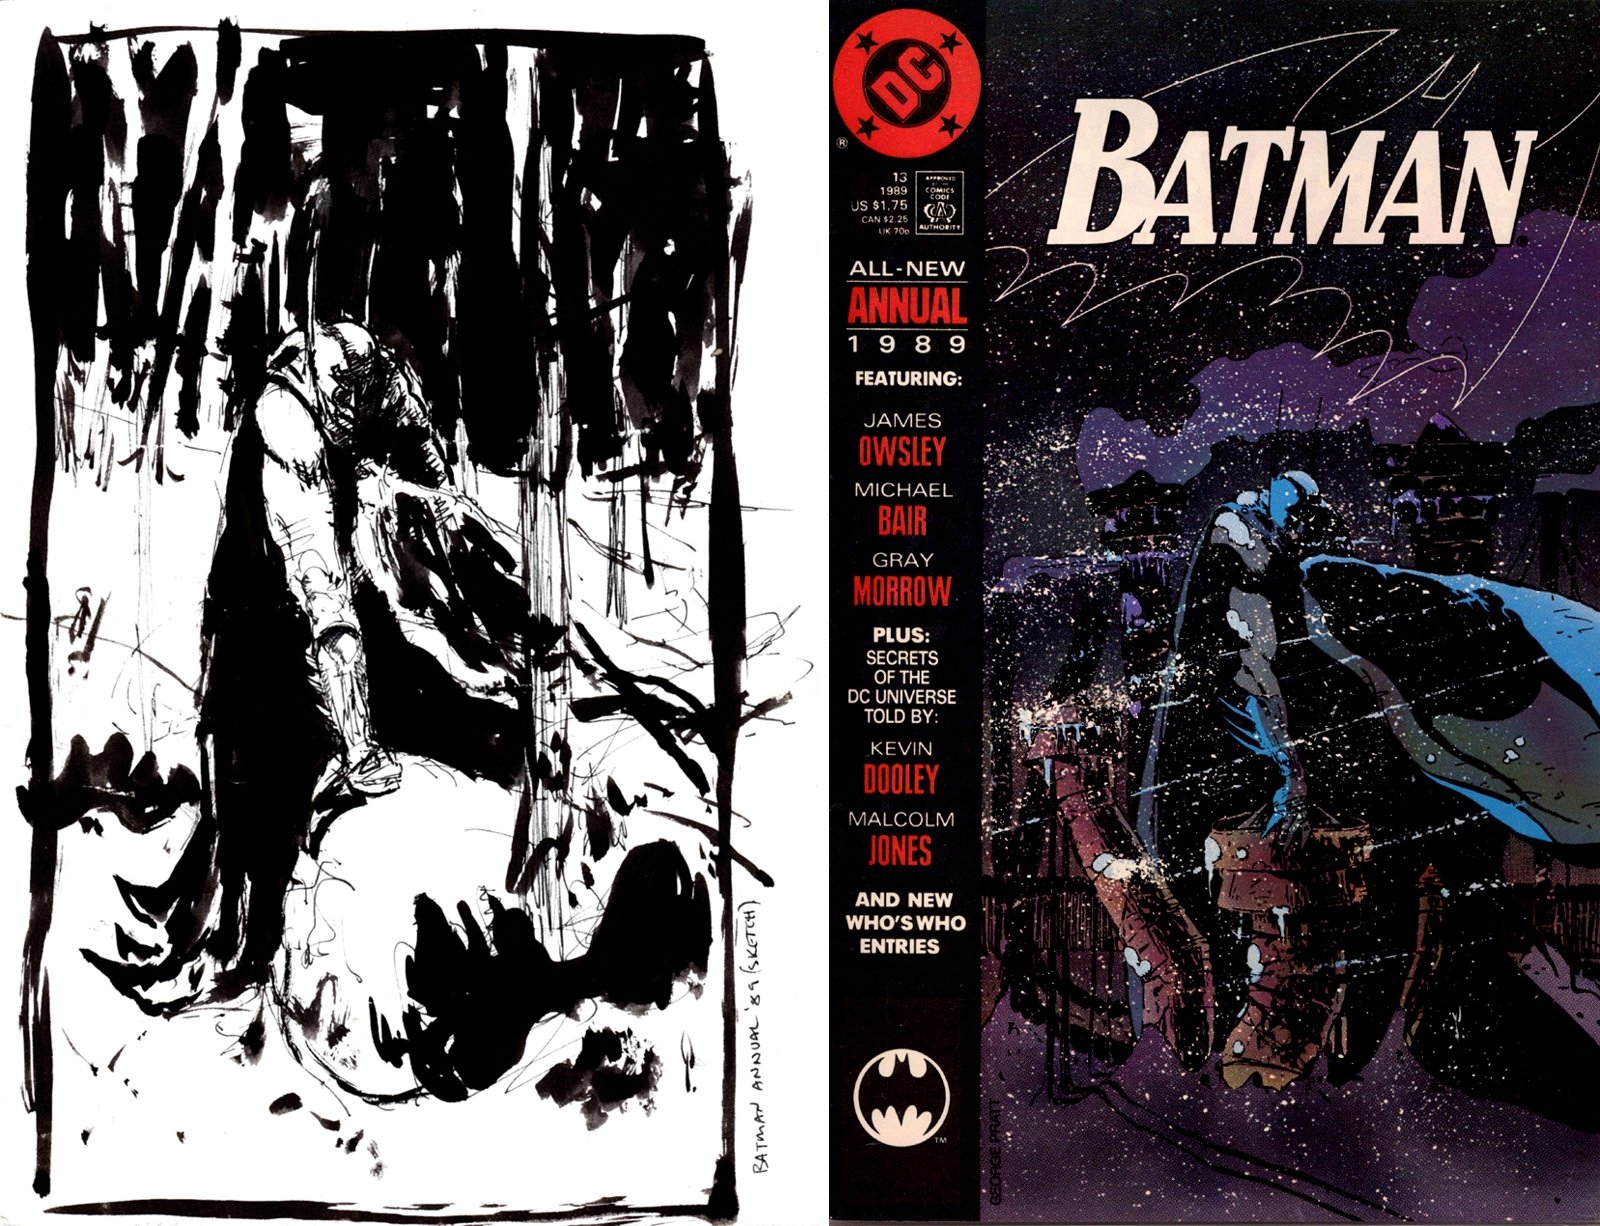 Batman Annual 13 Cover Prelim (SOLD LIVE ON 'DUELING DEALERS OF COMIC ART' EPISODE #8 PODCAST ON 3-17-2021 (RE-WATCH OUR LIVE ART PODCAST HERE!)